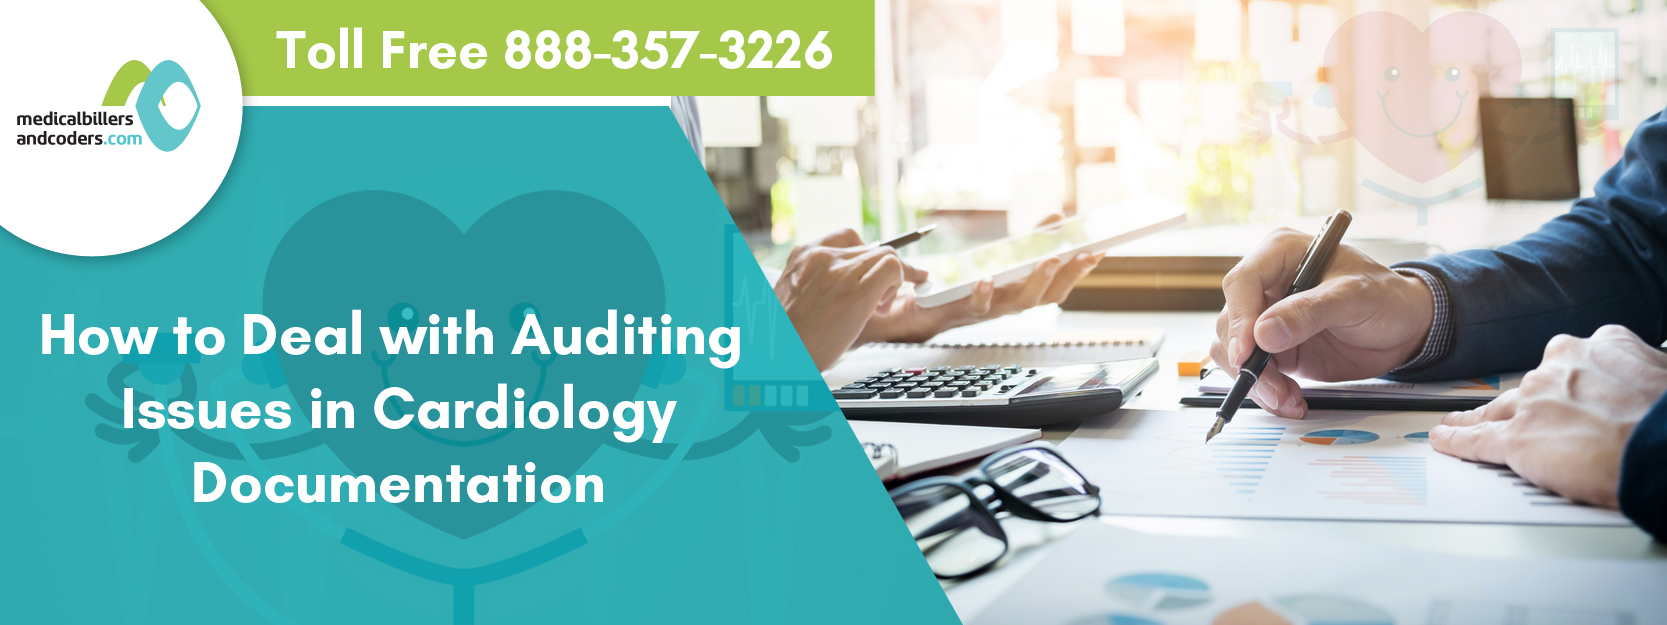 How To Deal With Auditing Issues In Cardiology Documentation